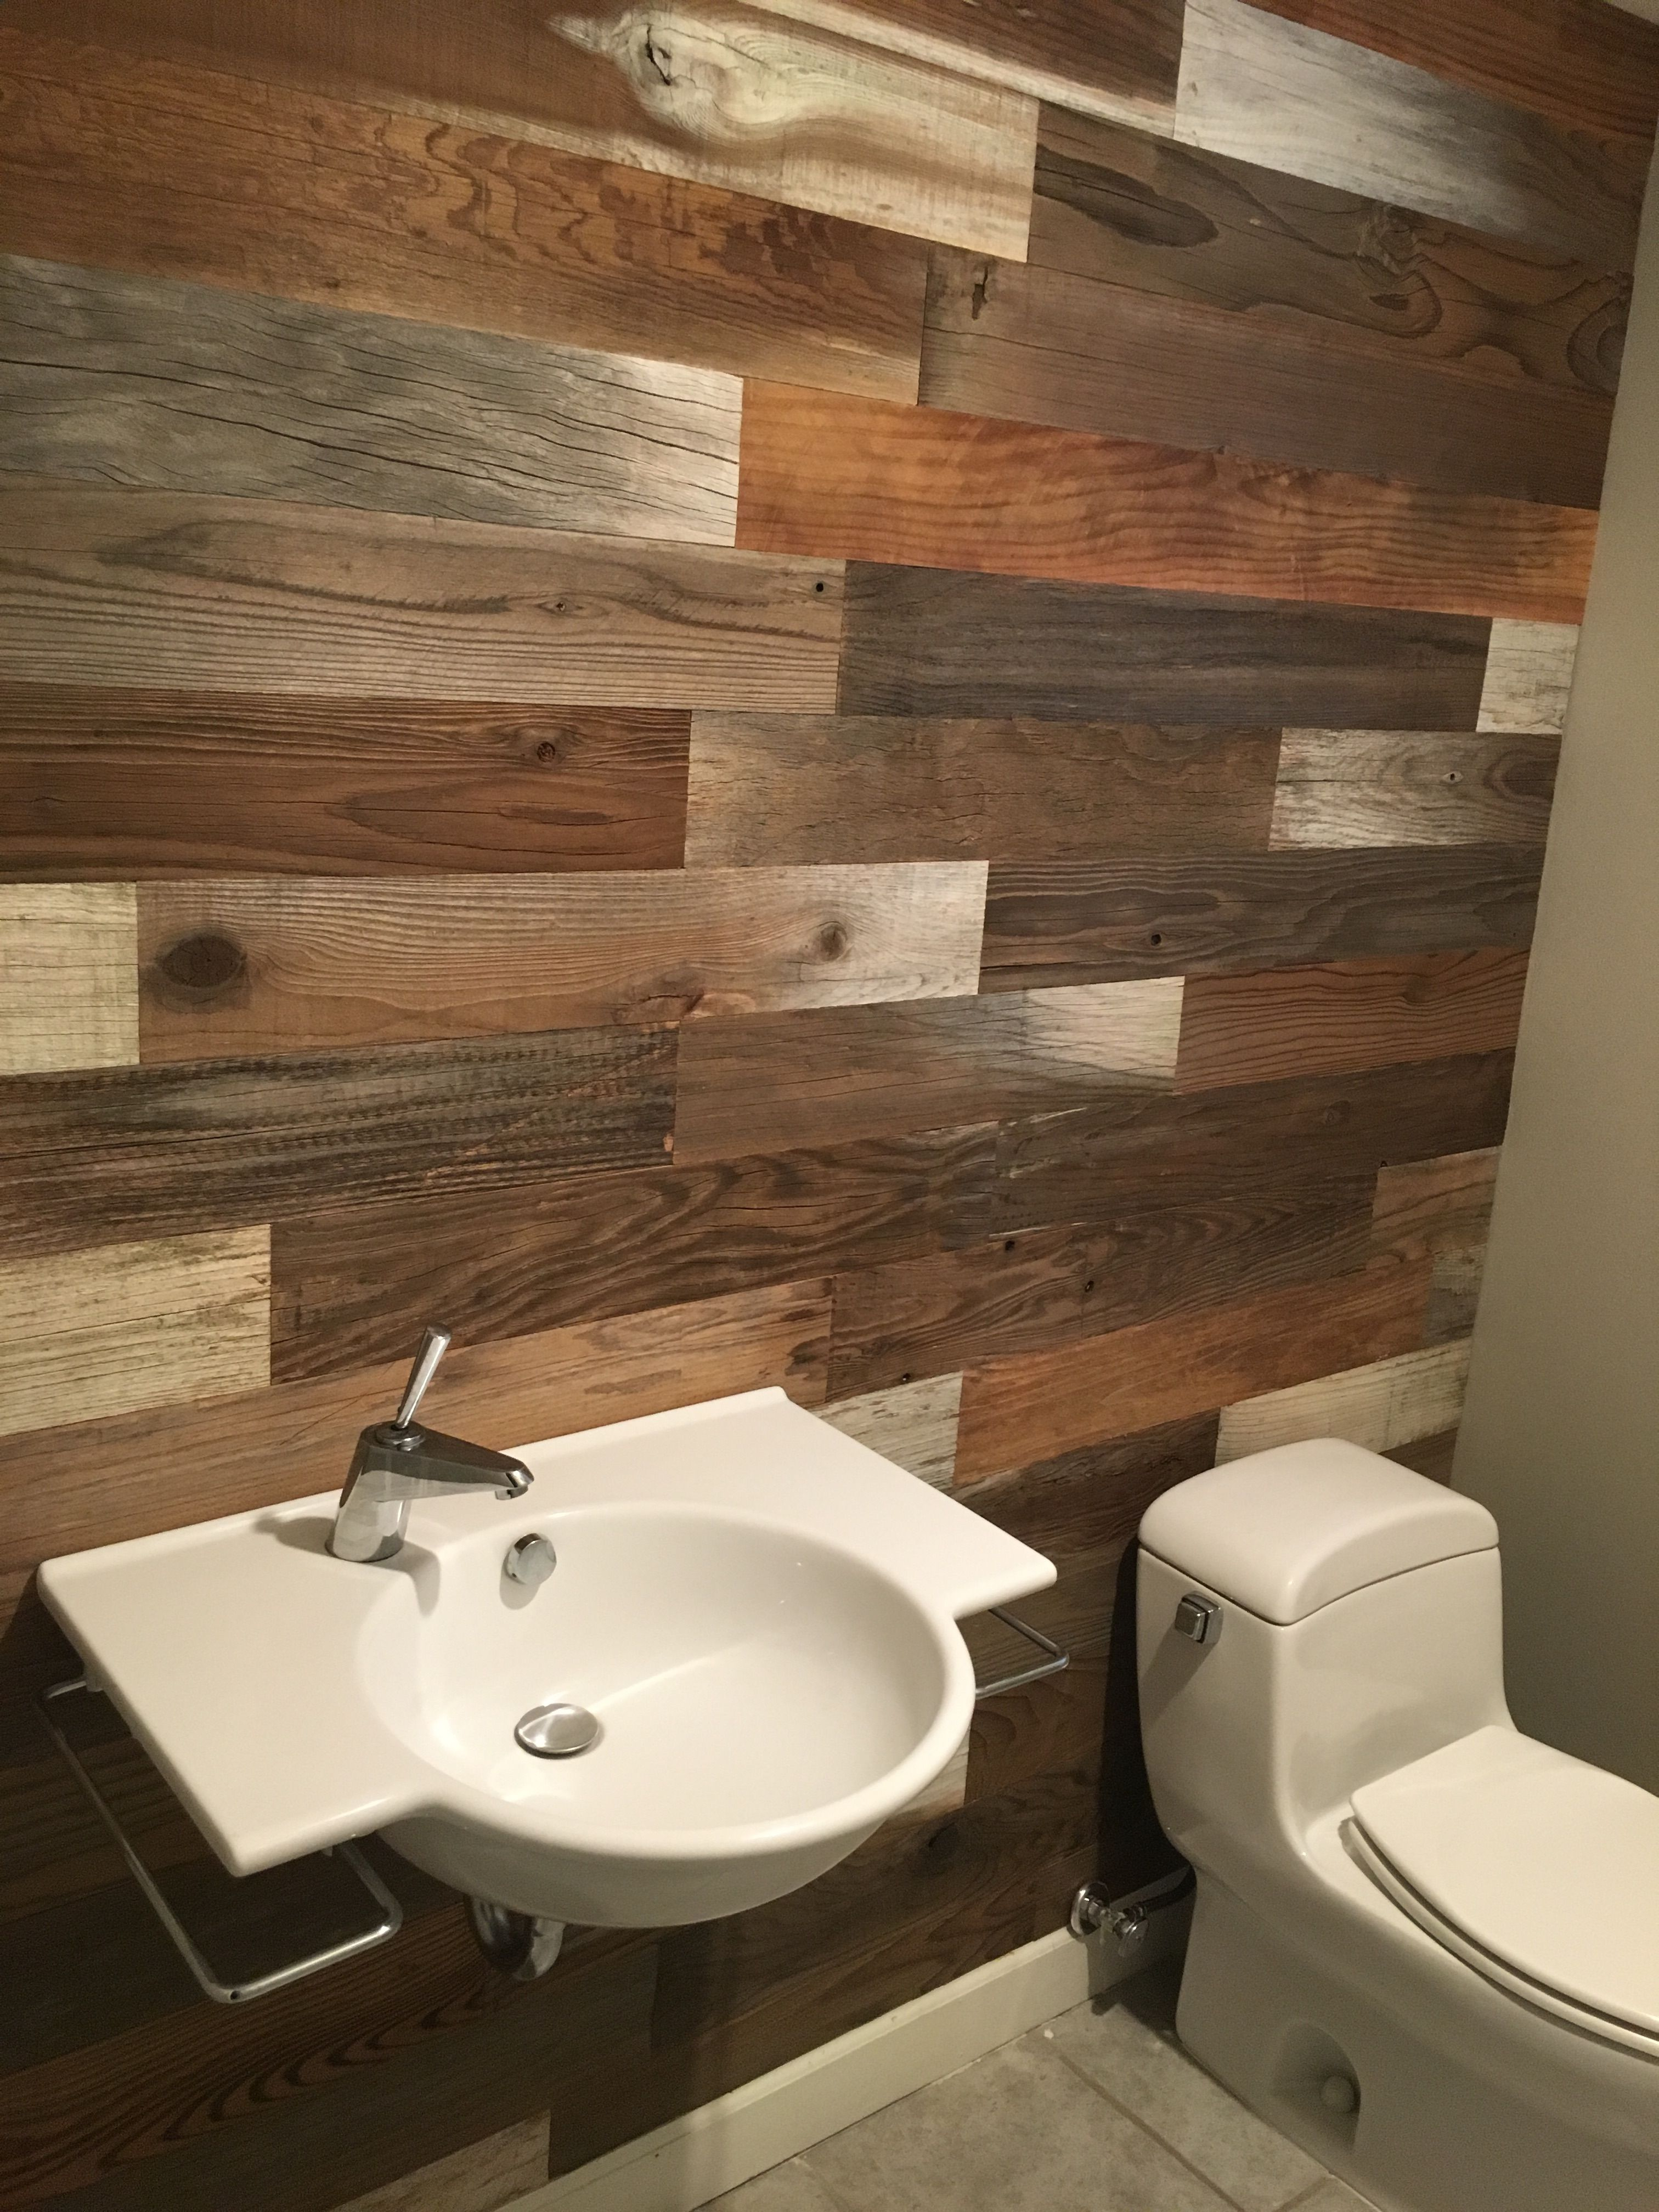 Bathroom Remodel With Stikwood: Cheap Bathroom Remodel, Bathroom